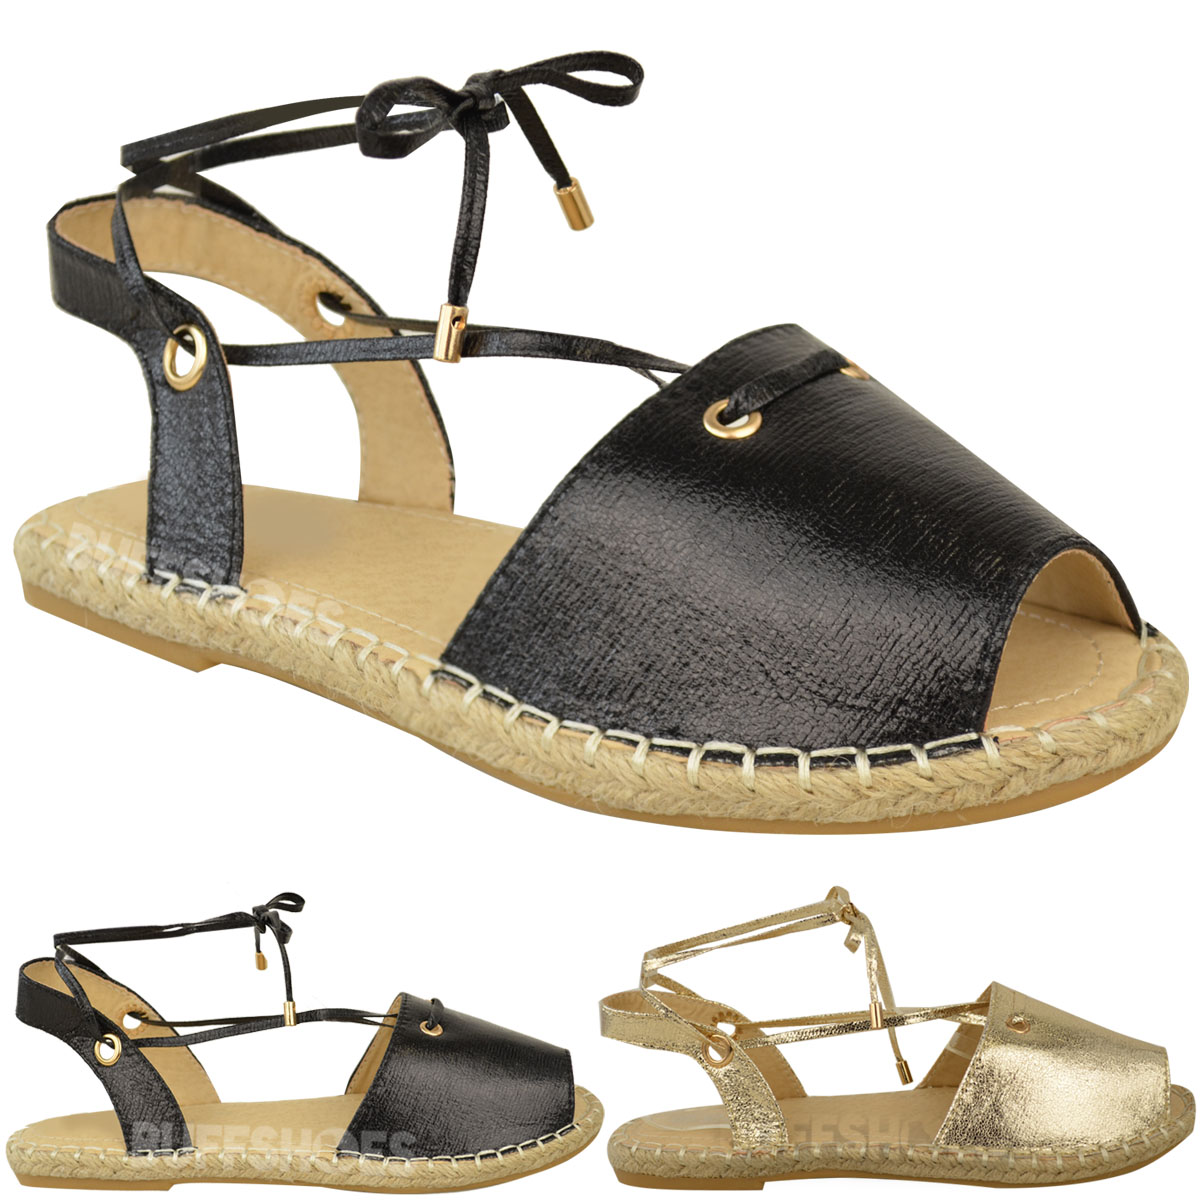 pour femmes plat espadrilles sandales lacet bride cheville ebay. Black Bedroom Furniture Sets. Home Design Ideas